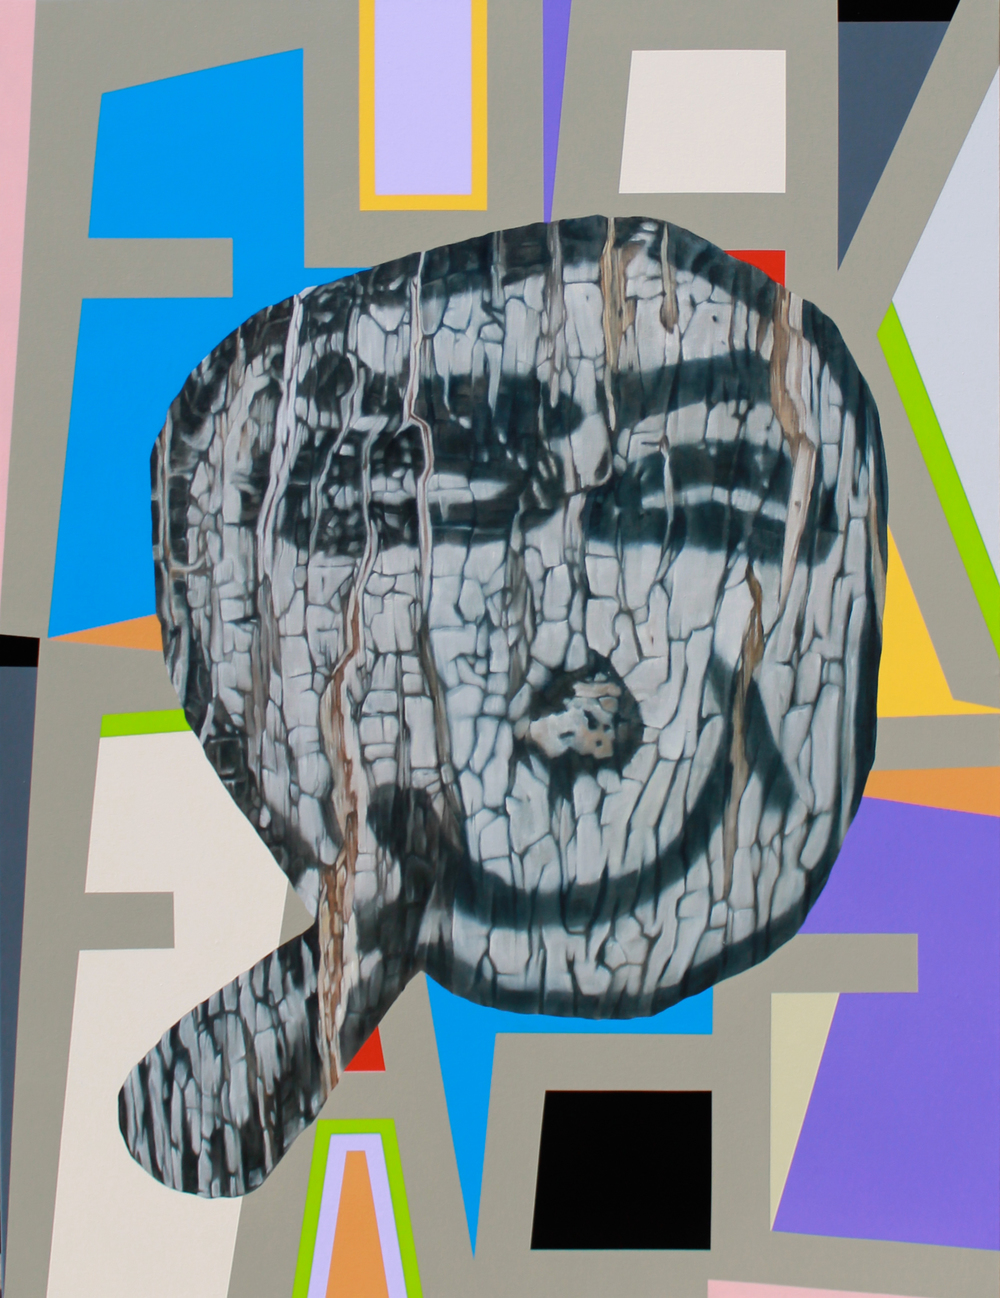 Fuckface, with Jon Campbell, oil and enamel on canvas, 2015-16